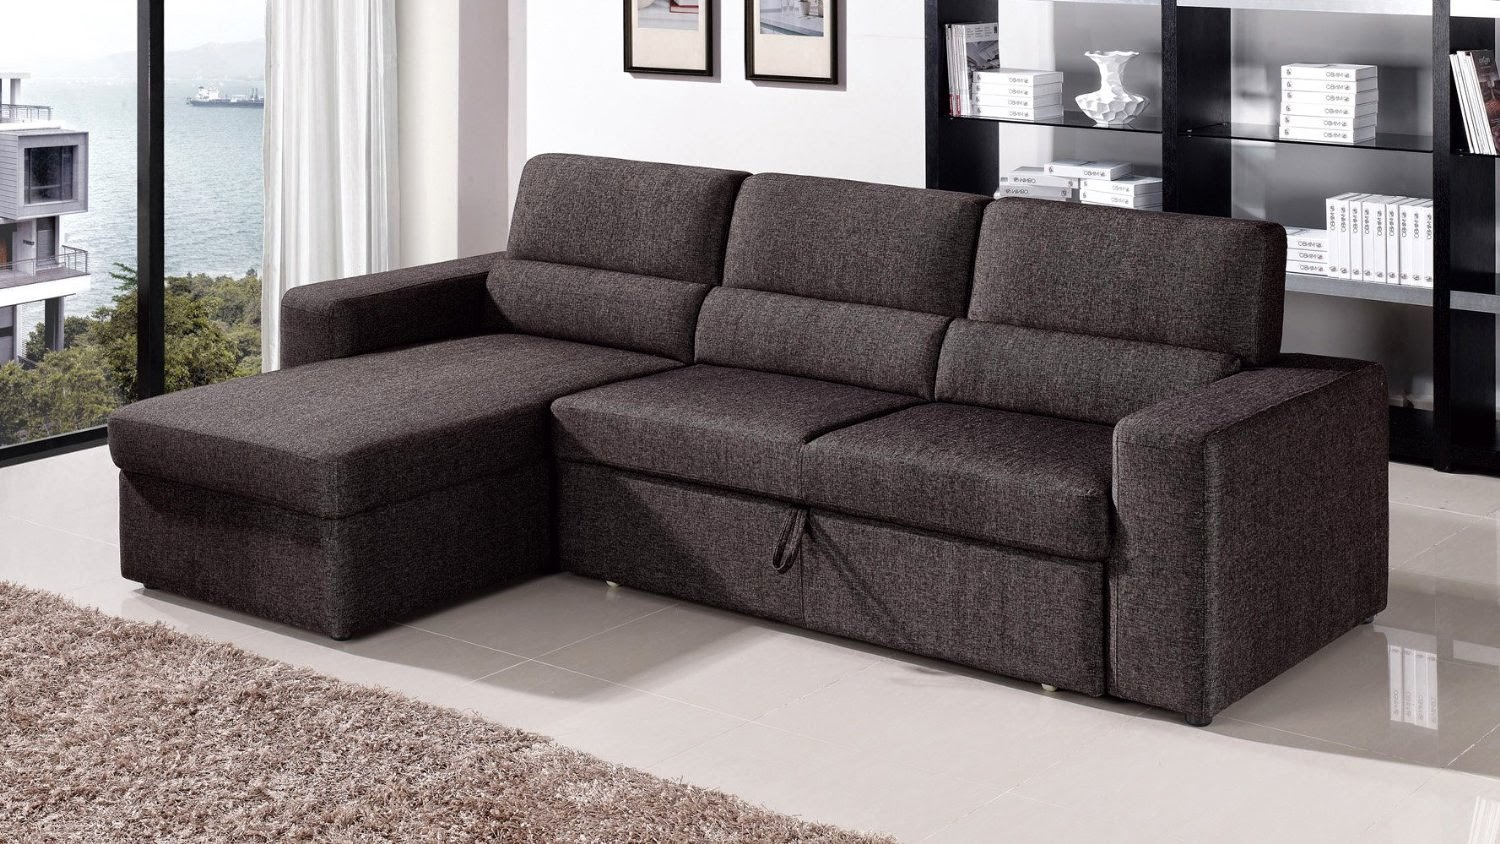 Pull out couch sectional couch with pull out bed Loveseat with pullout bed